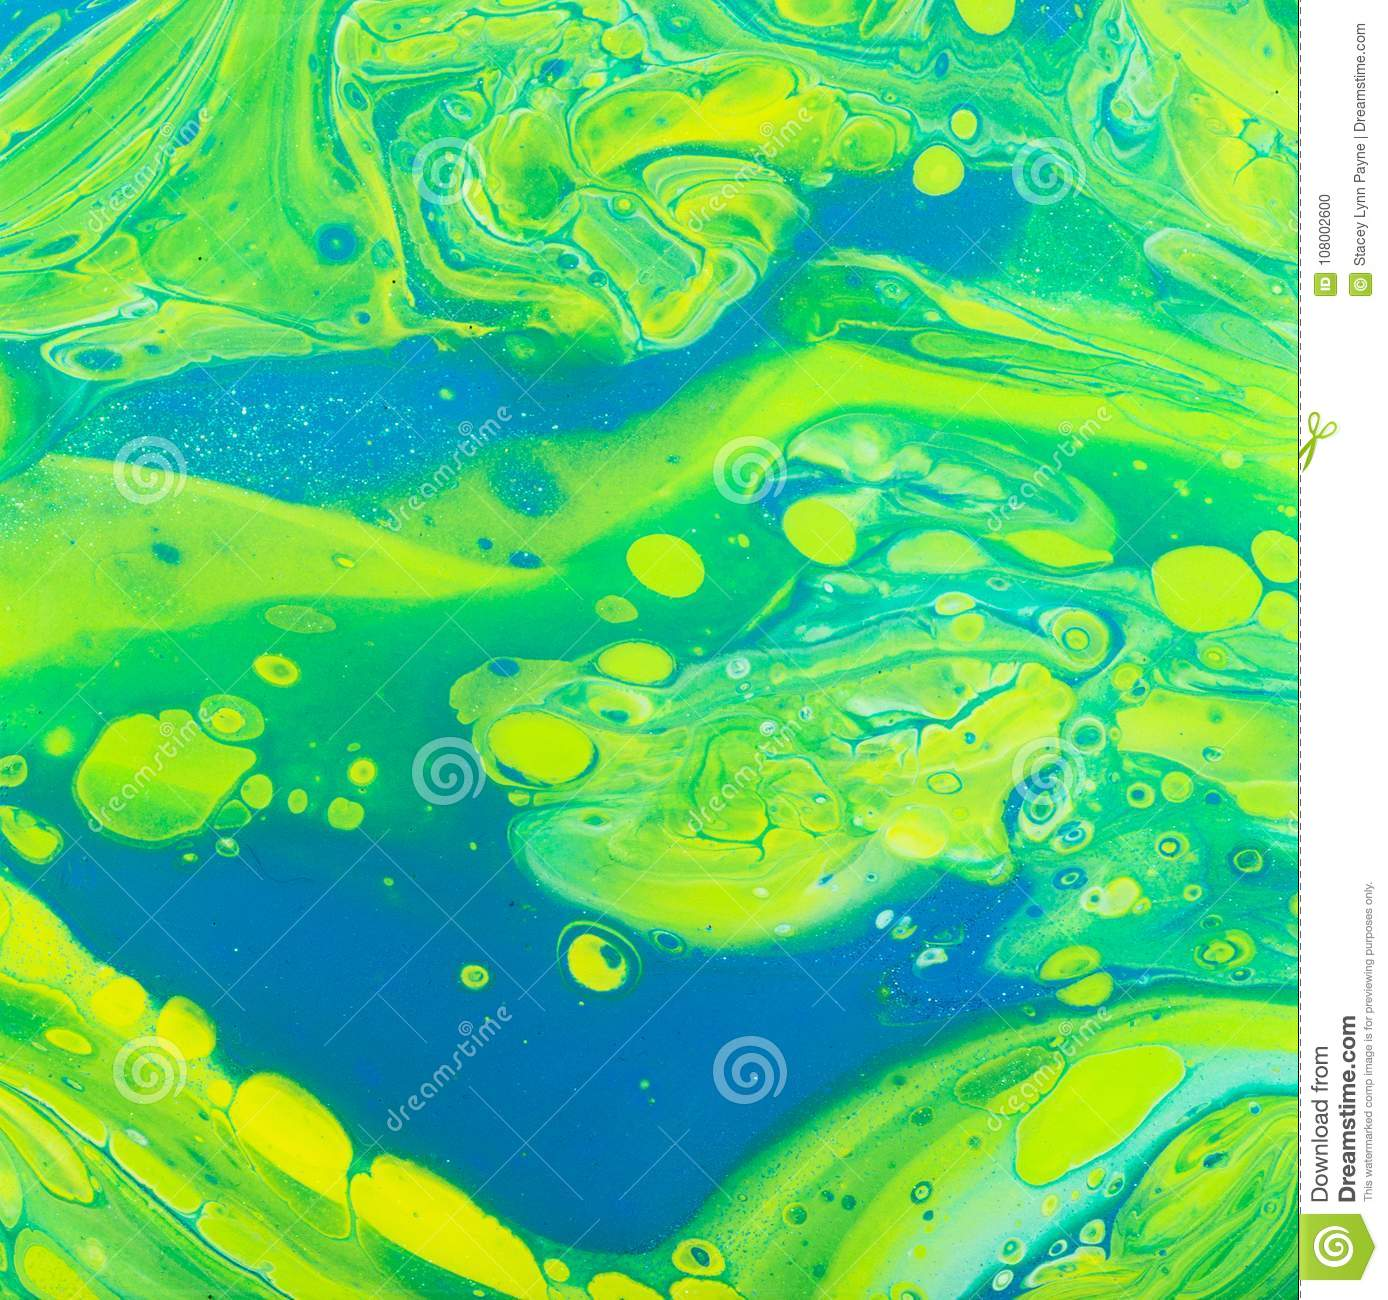 Abstract Plum Turquoise Yellow Pour Art